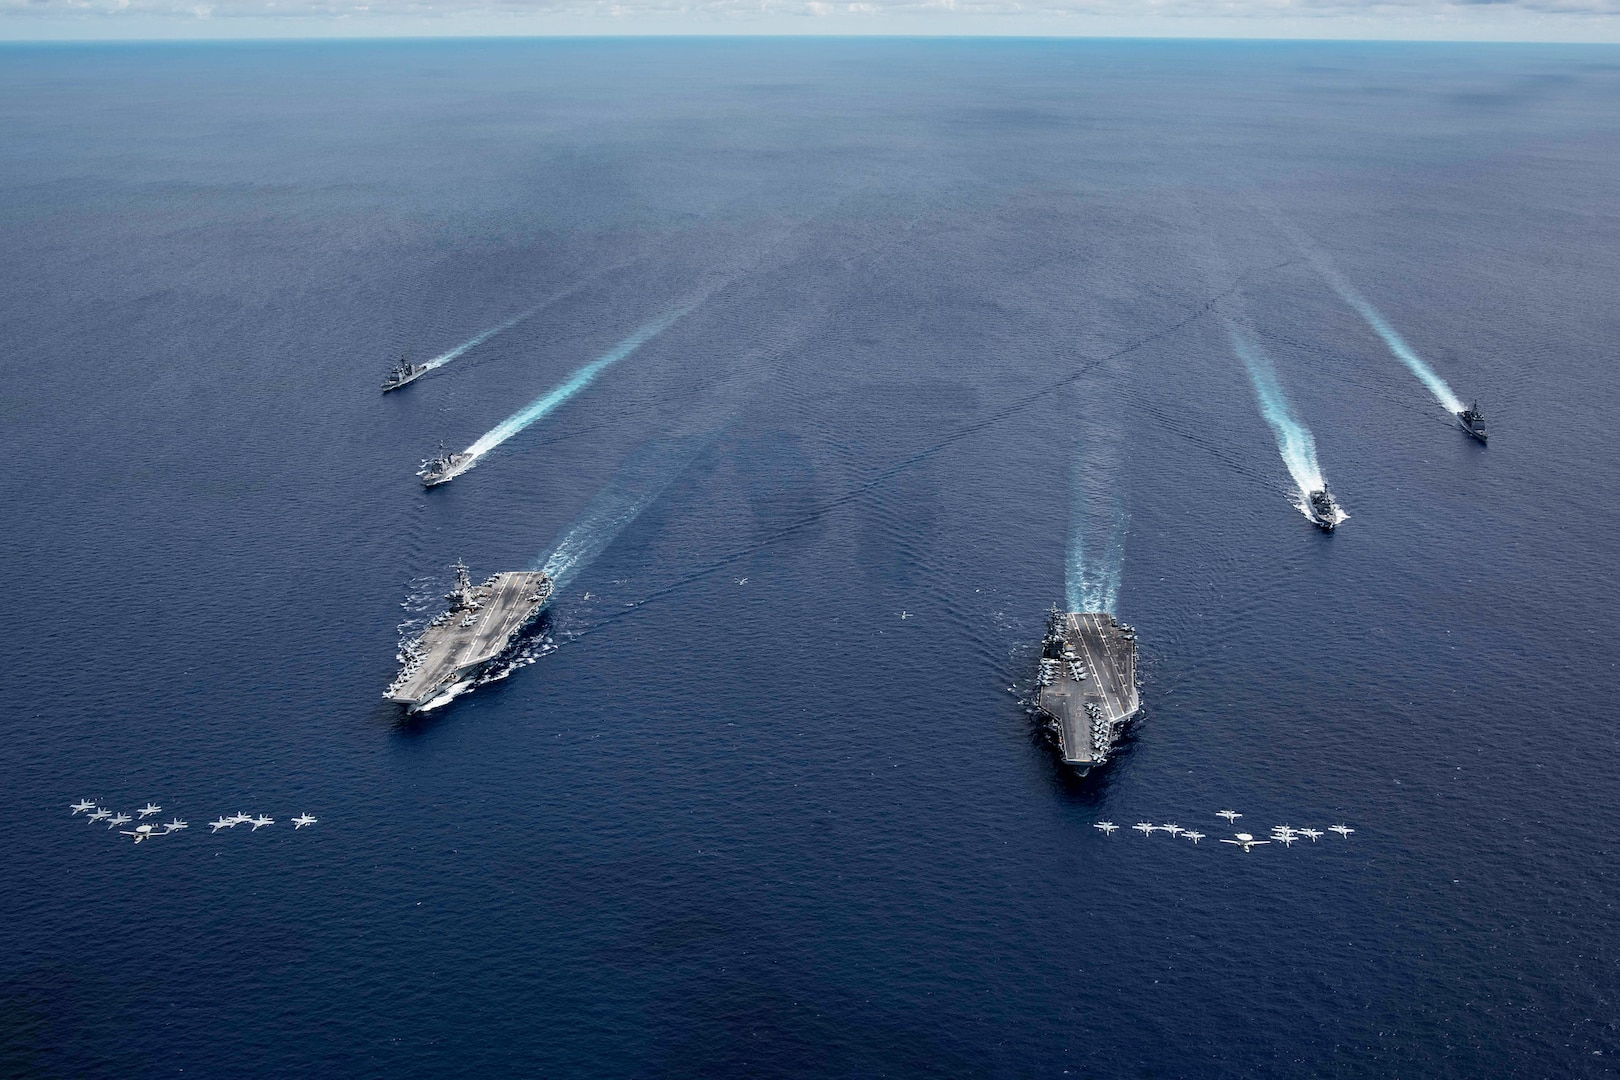 Nimitz, Reagan demonstrate unmatched commitment to free and open Indo-Pacific